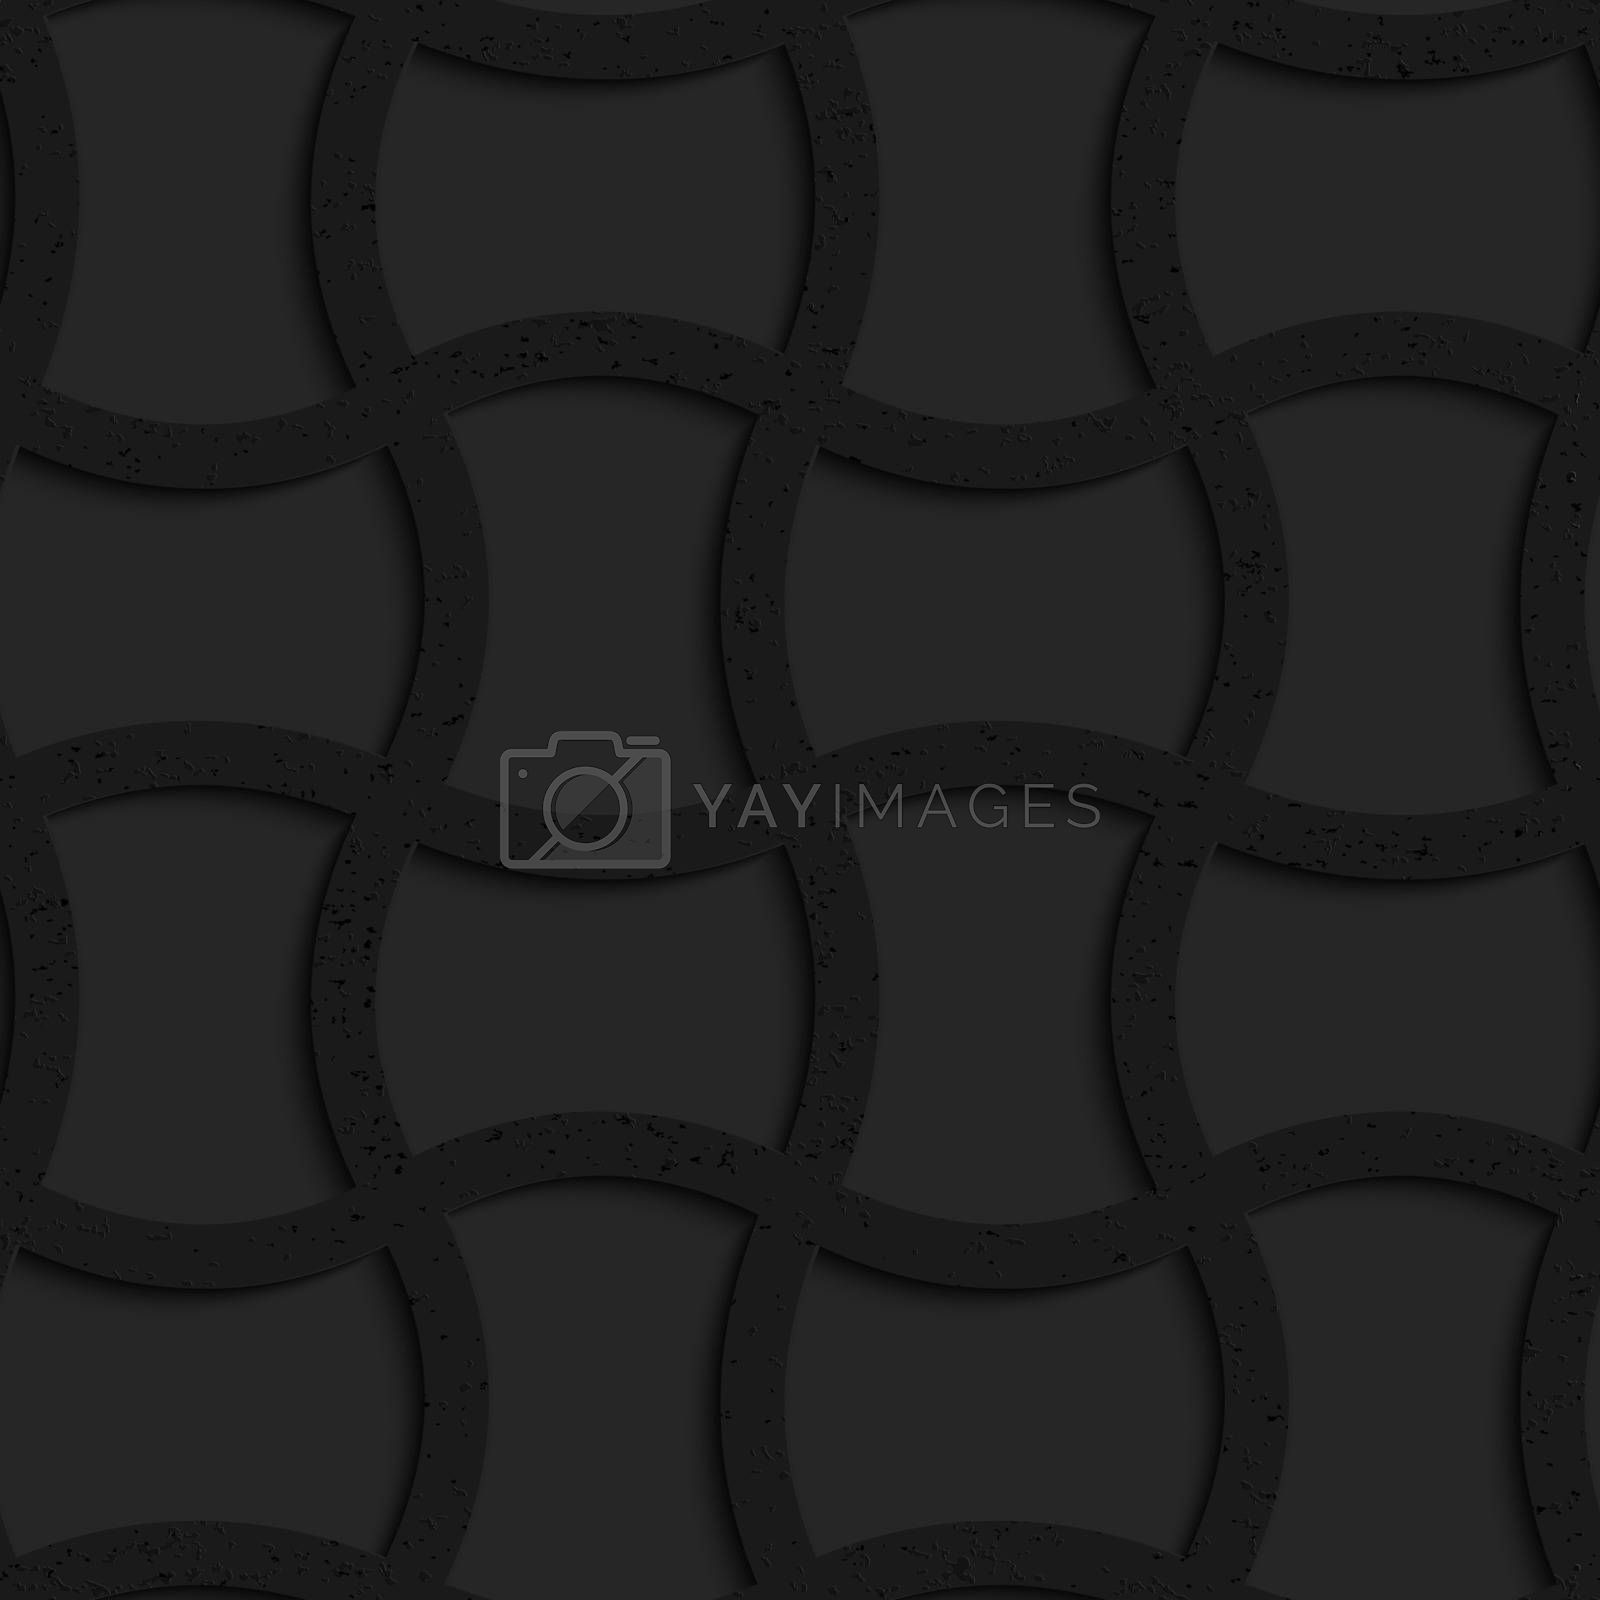 Textured black plastic arched rectangles grid by Zebra-Finch